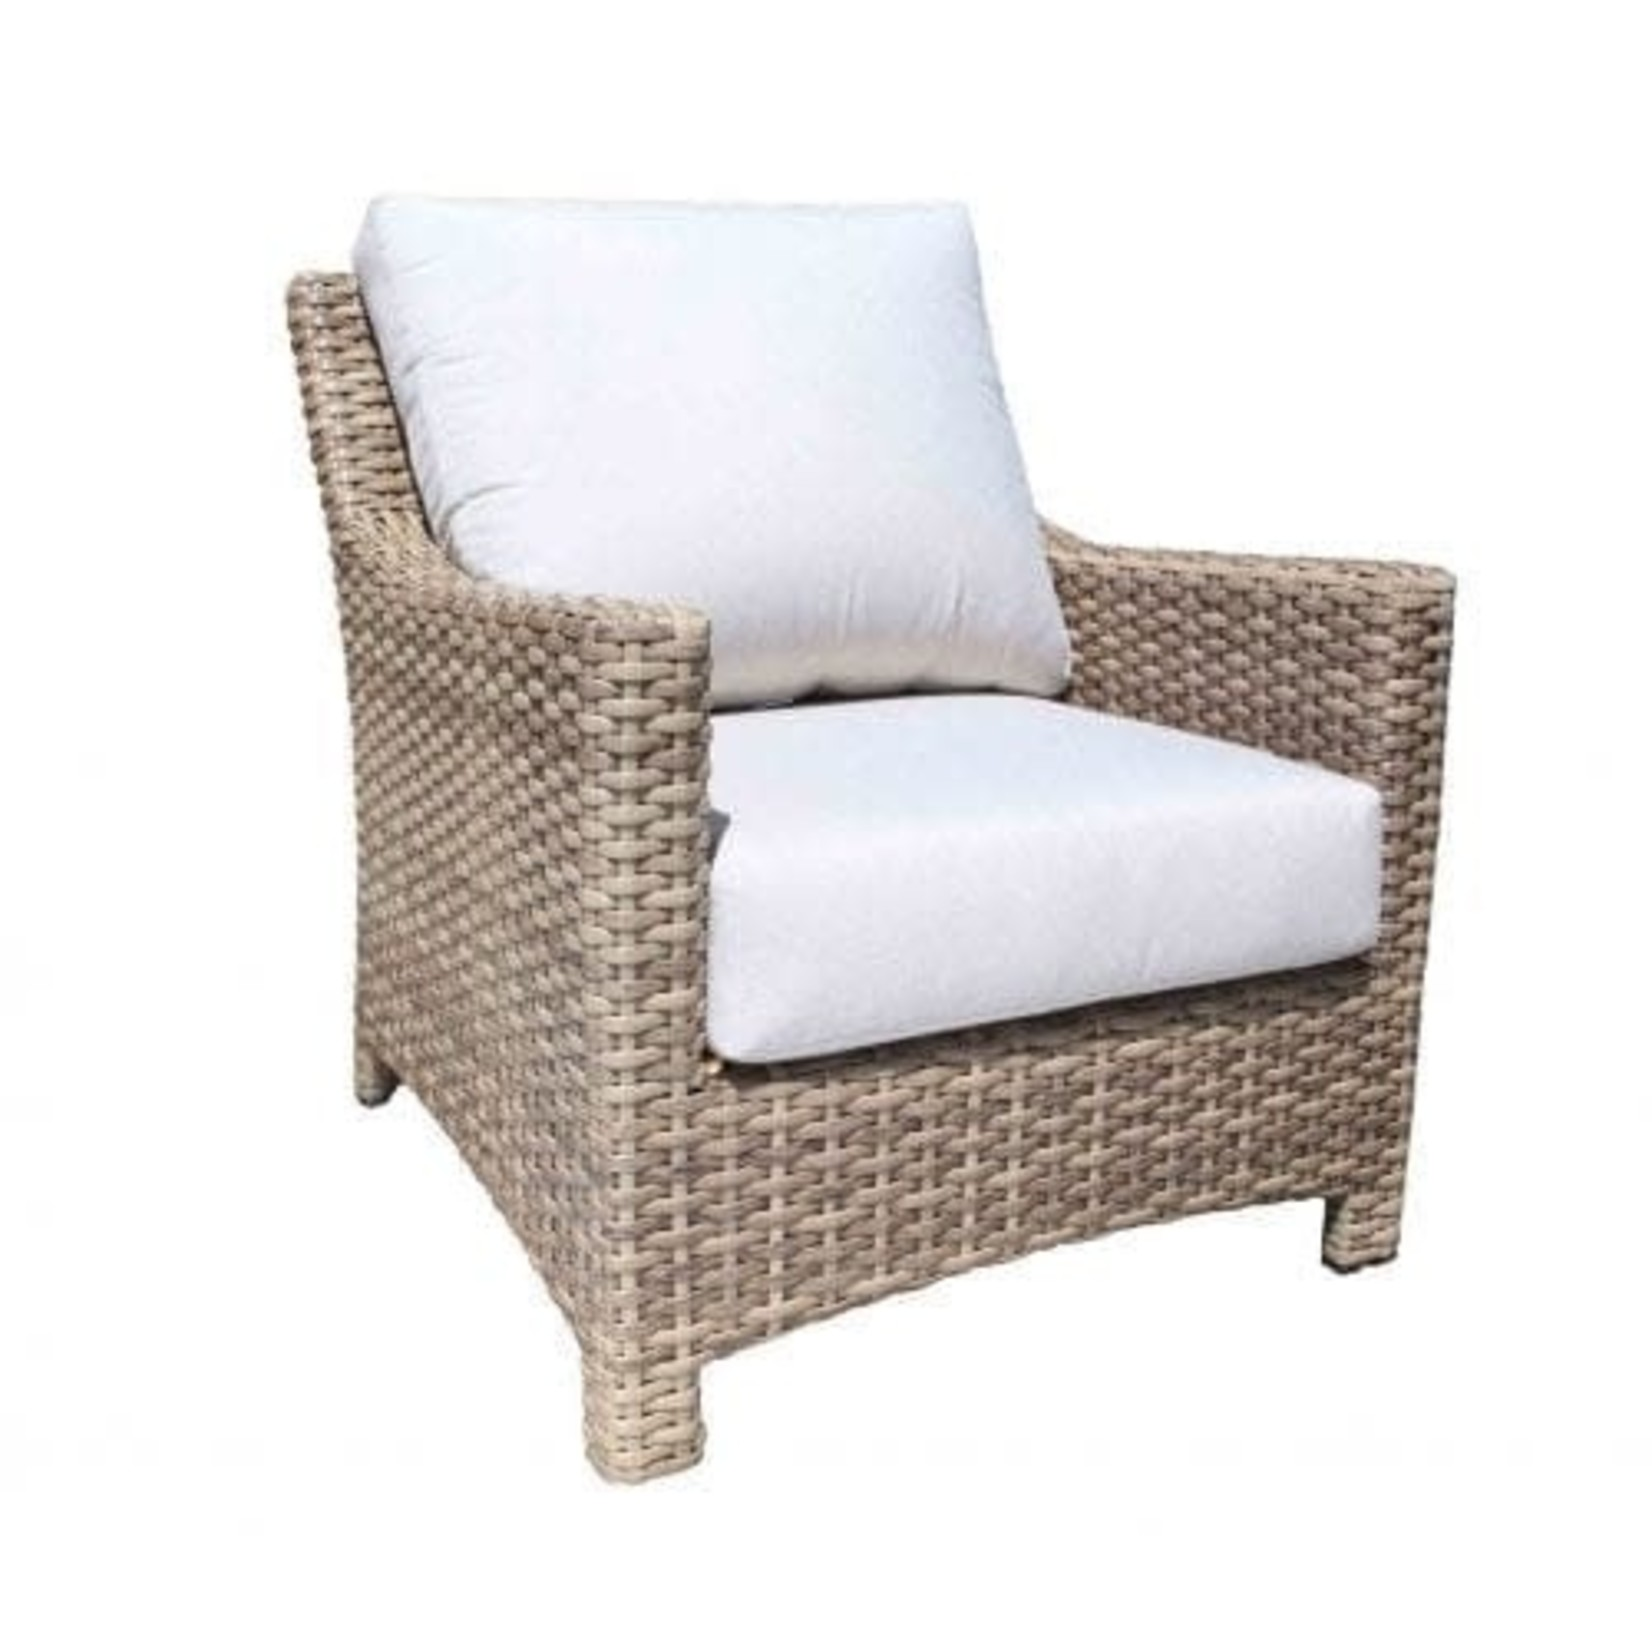 Cabana Coast Riverside Deep Seating Chair - Drift Teak